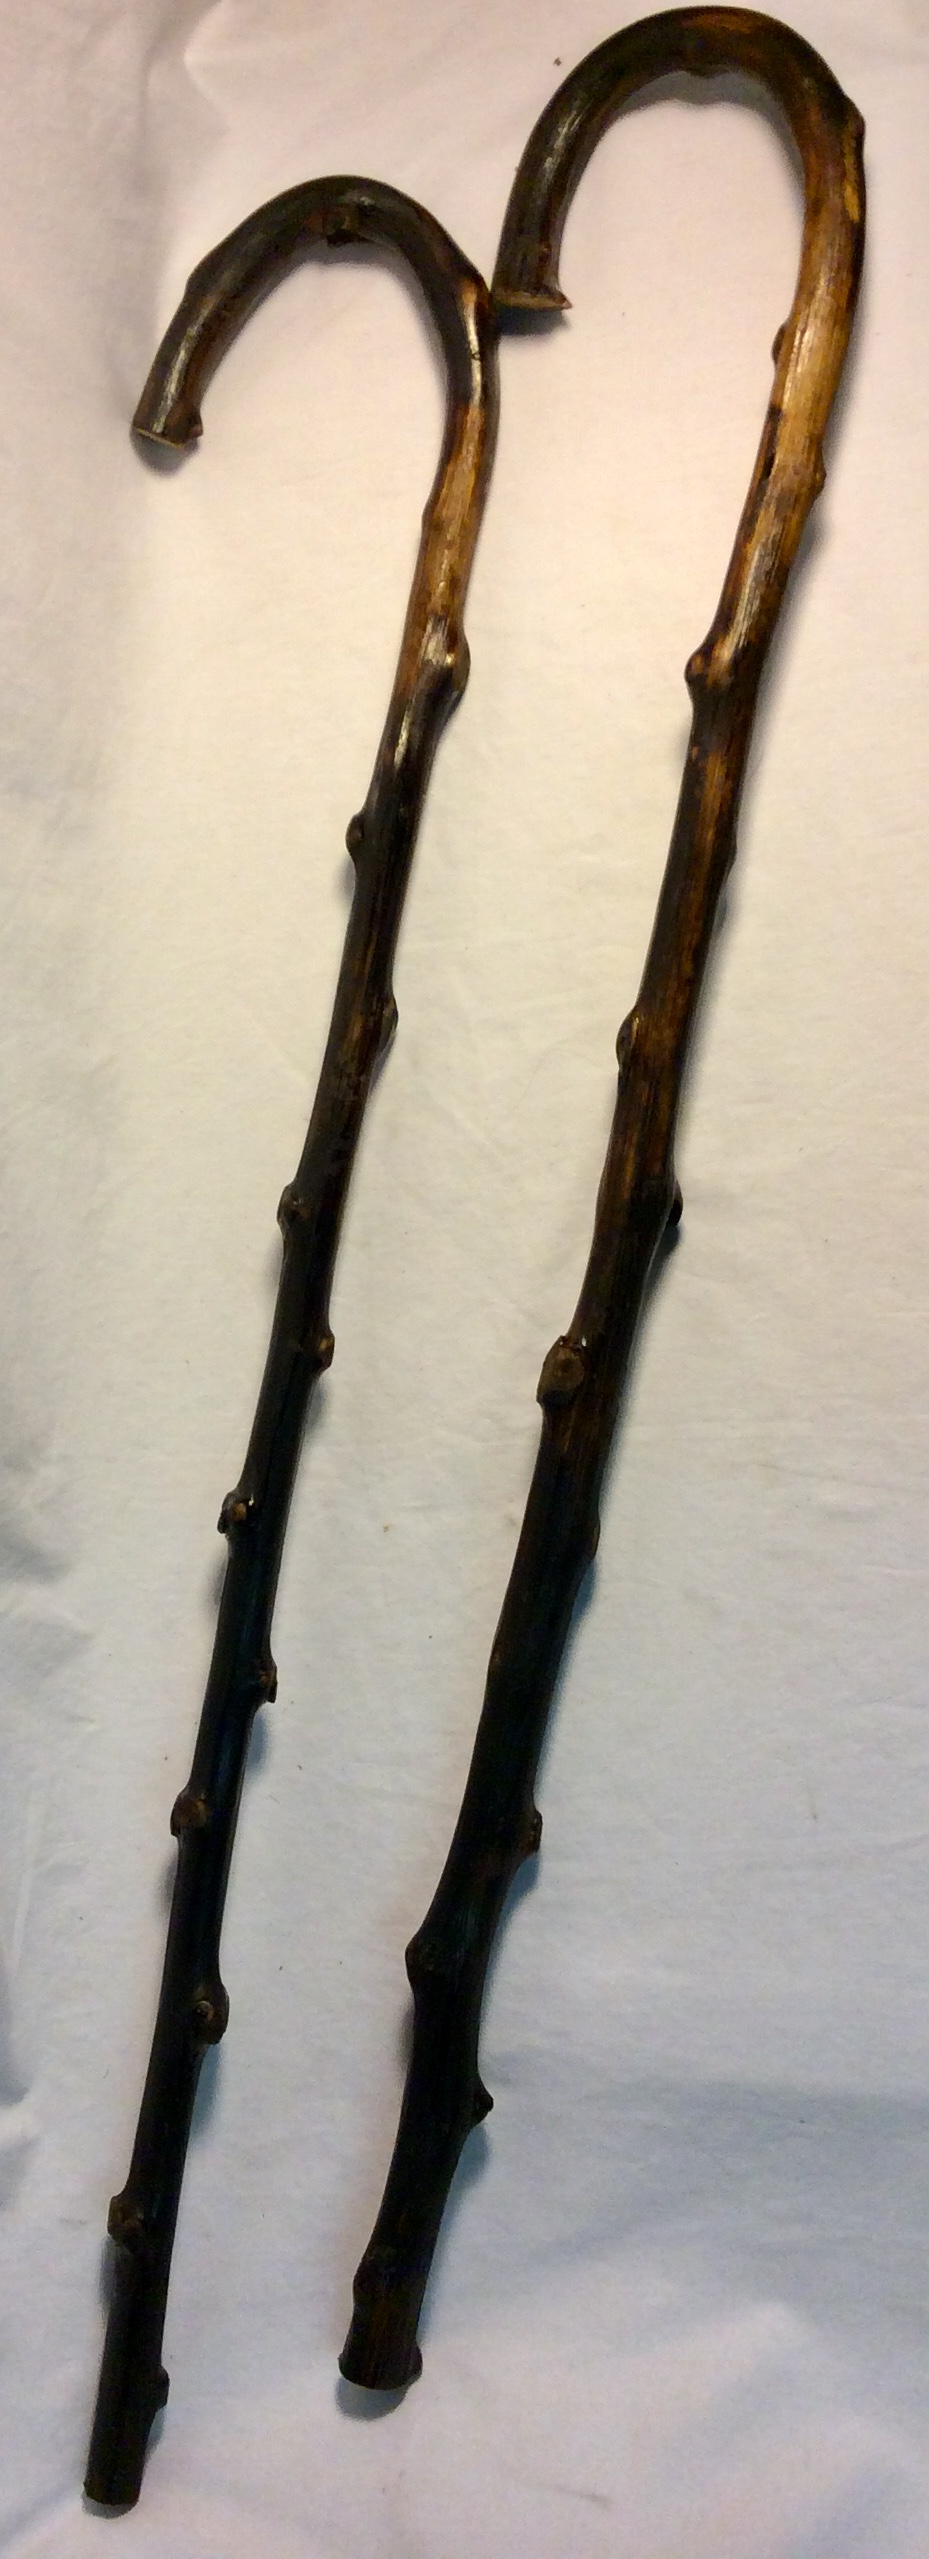 Dark knobbly wooden cane